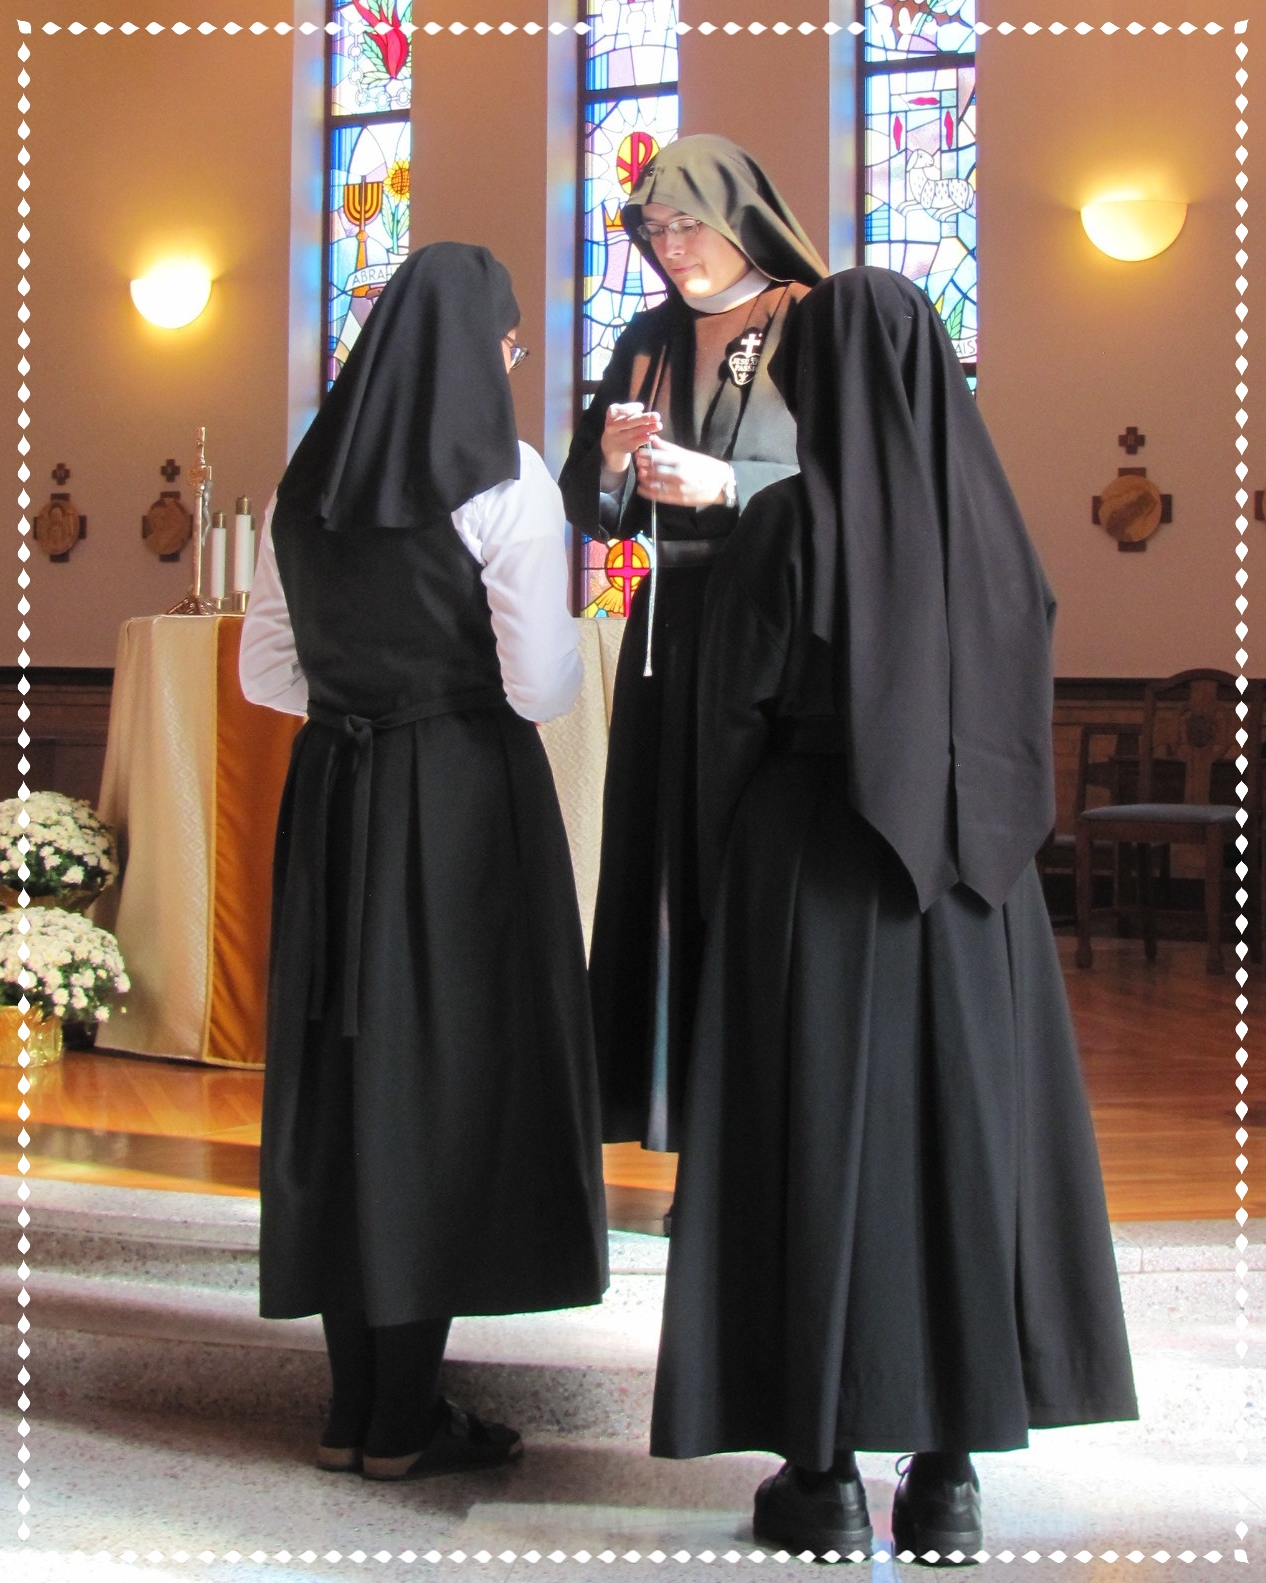 Theresa receives the postulant crucifix from Mother John Mary while Sr. Mary Veronica, the novice mistress, looks on.